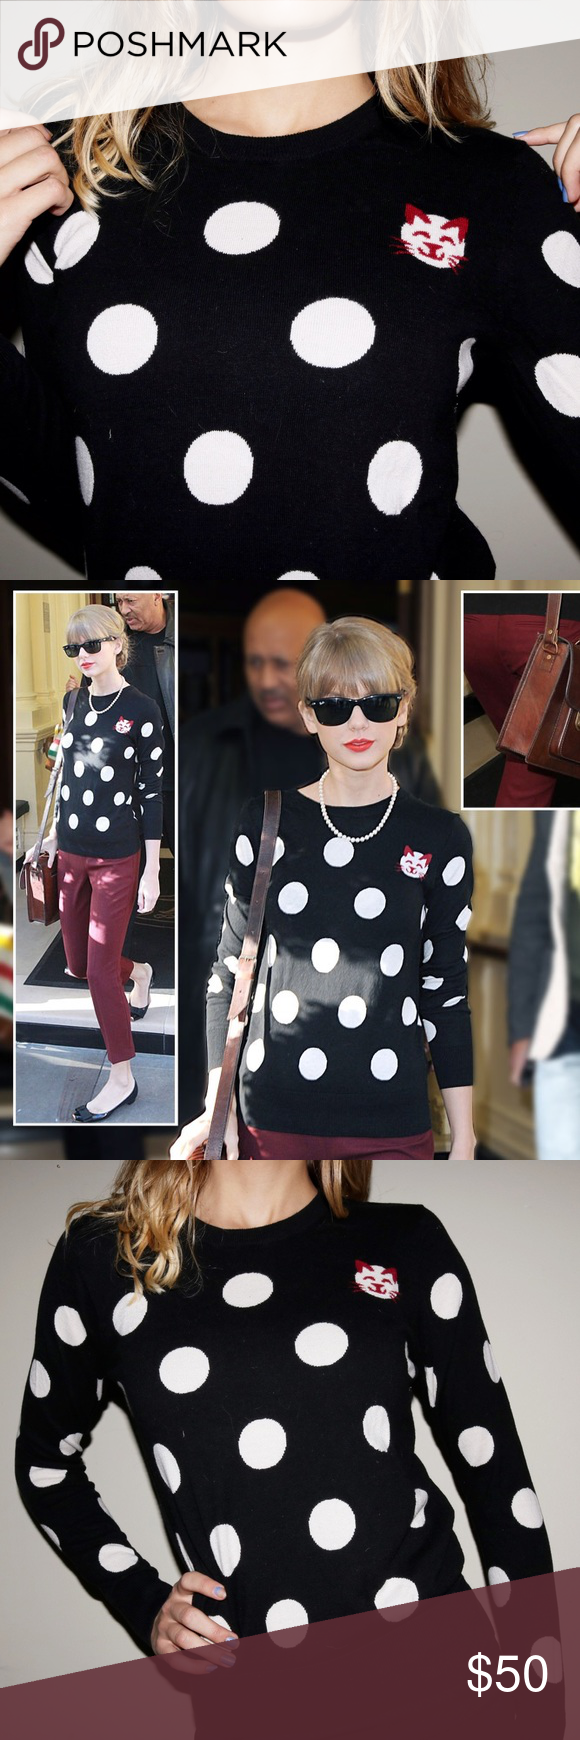 AS SEEN ON TAYLOR SWIFT French Connection Sweater Stylish and cute, black and white, polka-dot sweater with adorable red kitty accent. Even Taylor Swift approves of this sweater! This is a lovely layering piece for winter and a perfect gift for any cat lover, Swift lover, polka-dot lover, or sweater lover! ❤🐱 Fitted Medium, would work on smalls as well. Great condition, only worn a few times! French Connection Sweaters Crew & Scoop Necks